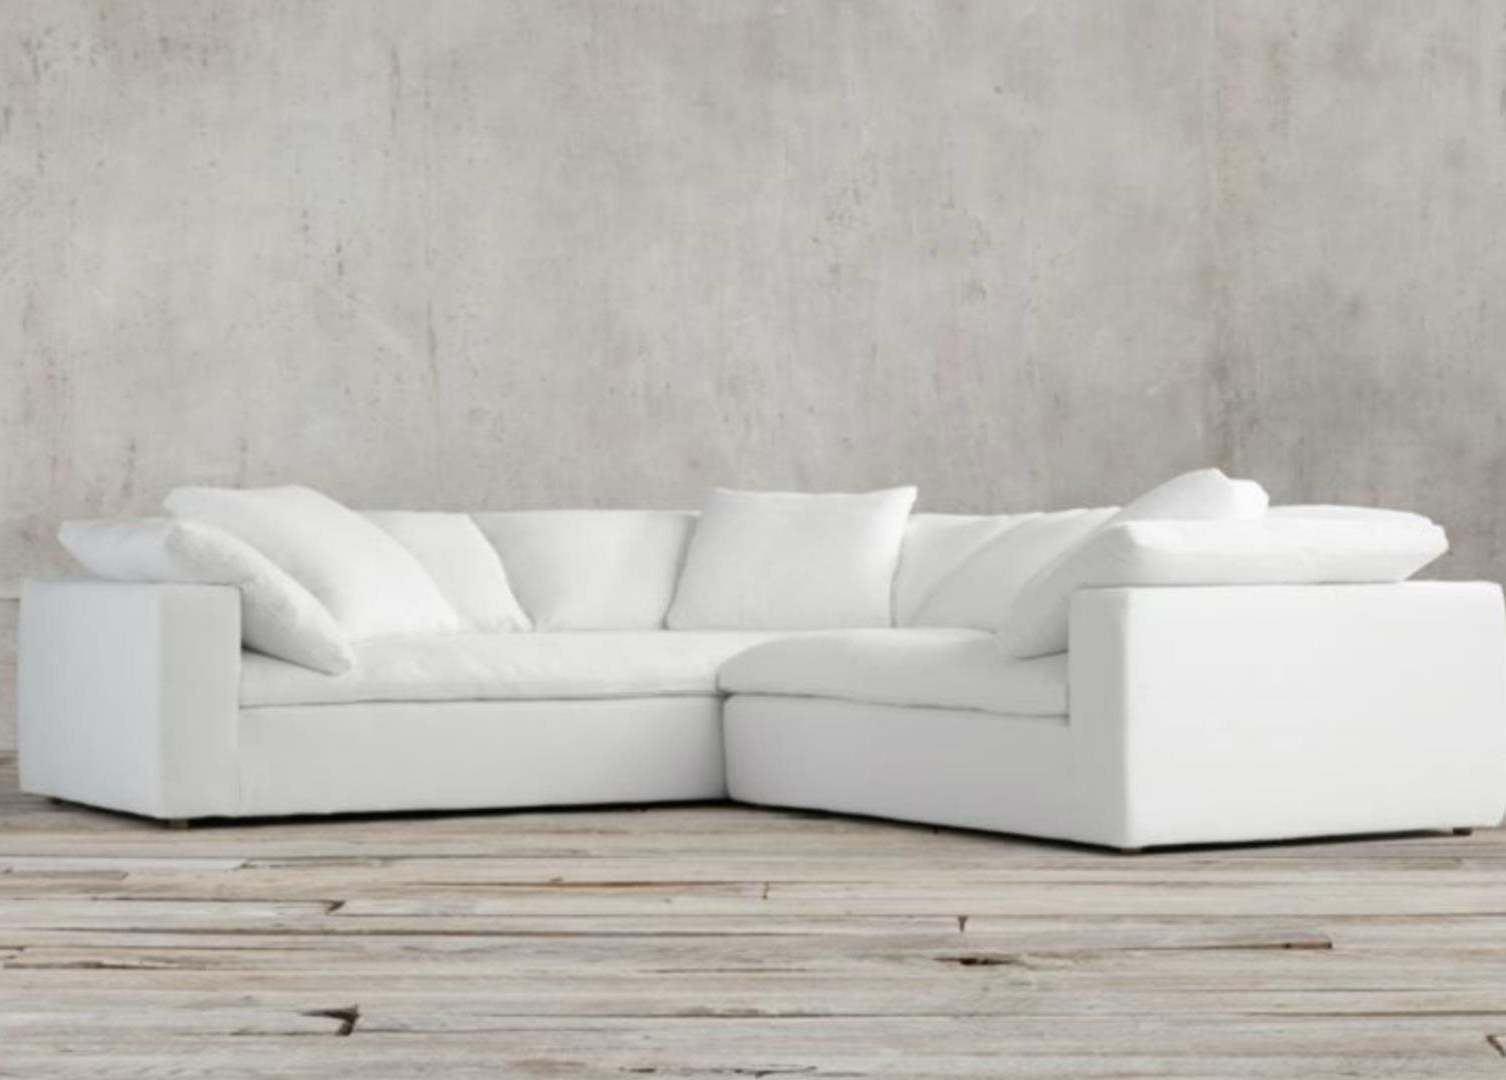 Well Known Restoration Hardware Cloud Modular Slipcovered Sofa: For Sale In Pertaining To Joining Hardware Sectional Sofas (View 6 of 20)